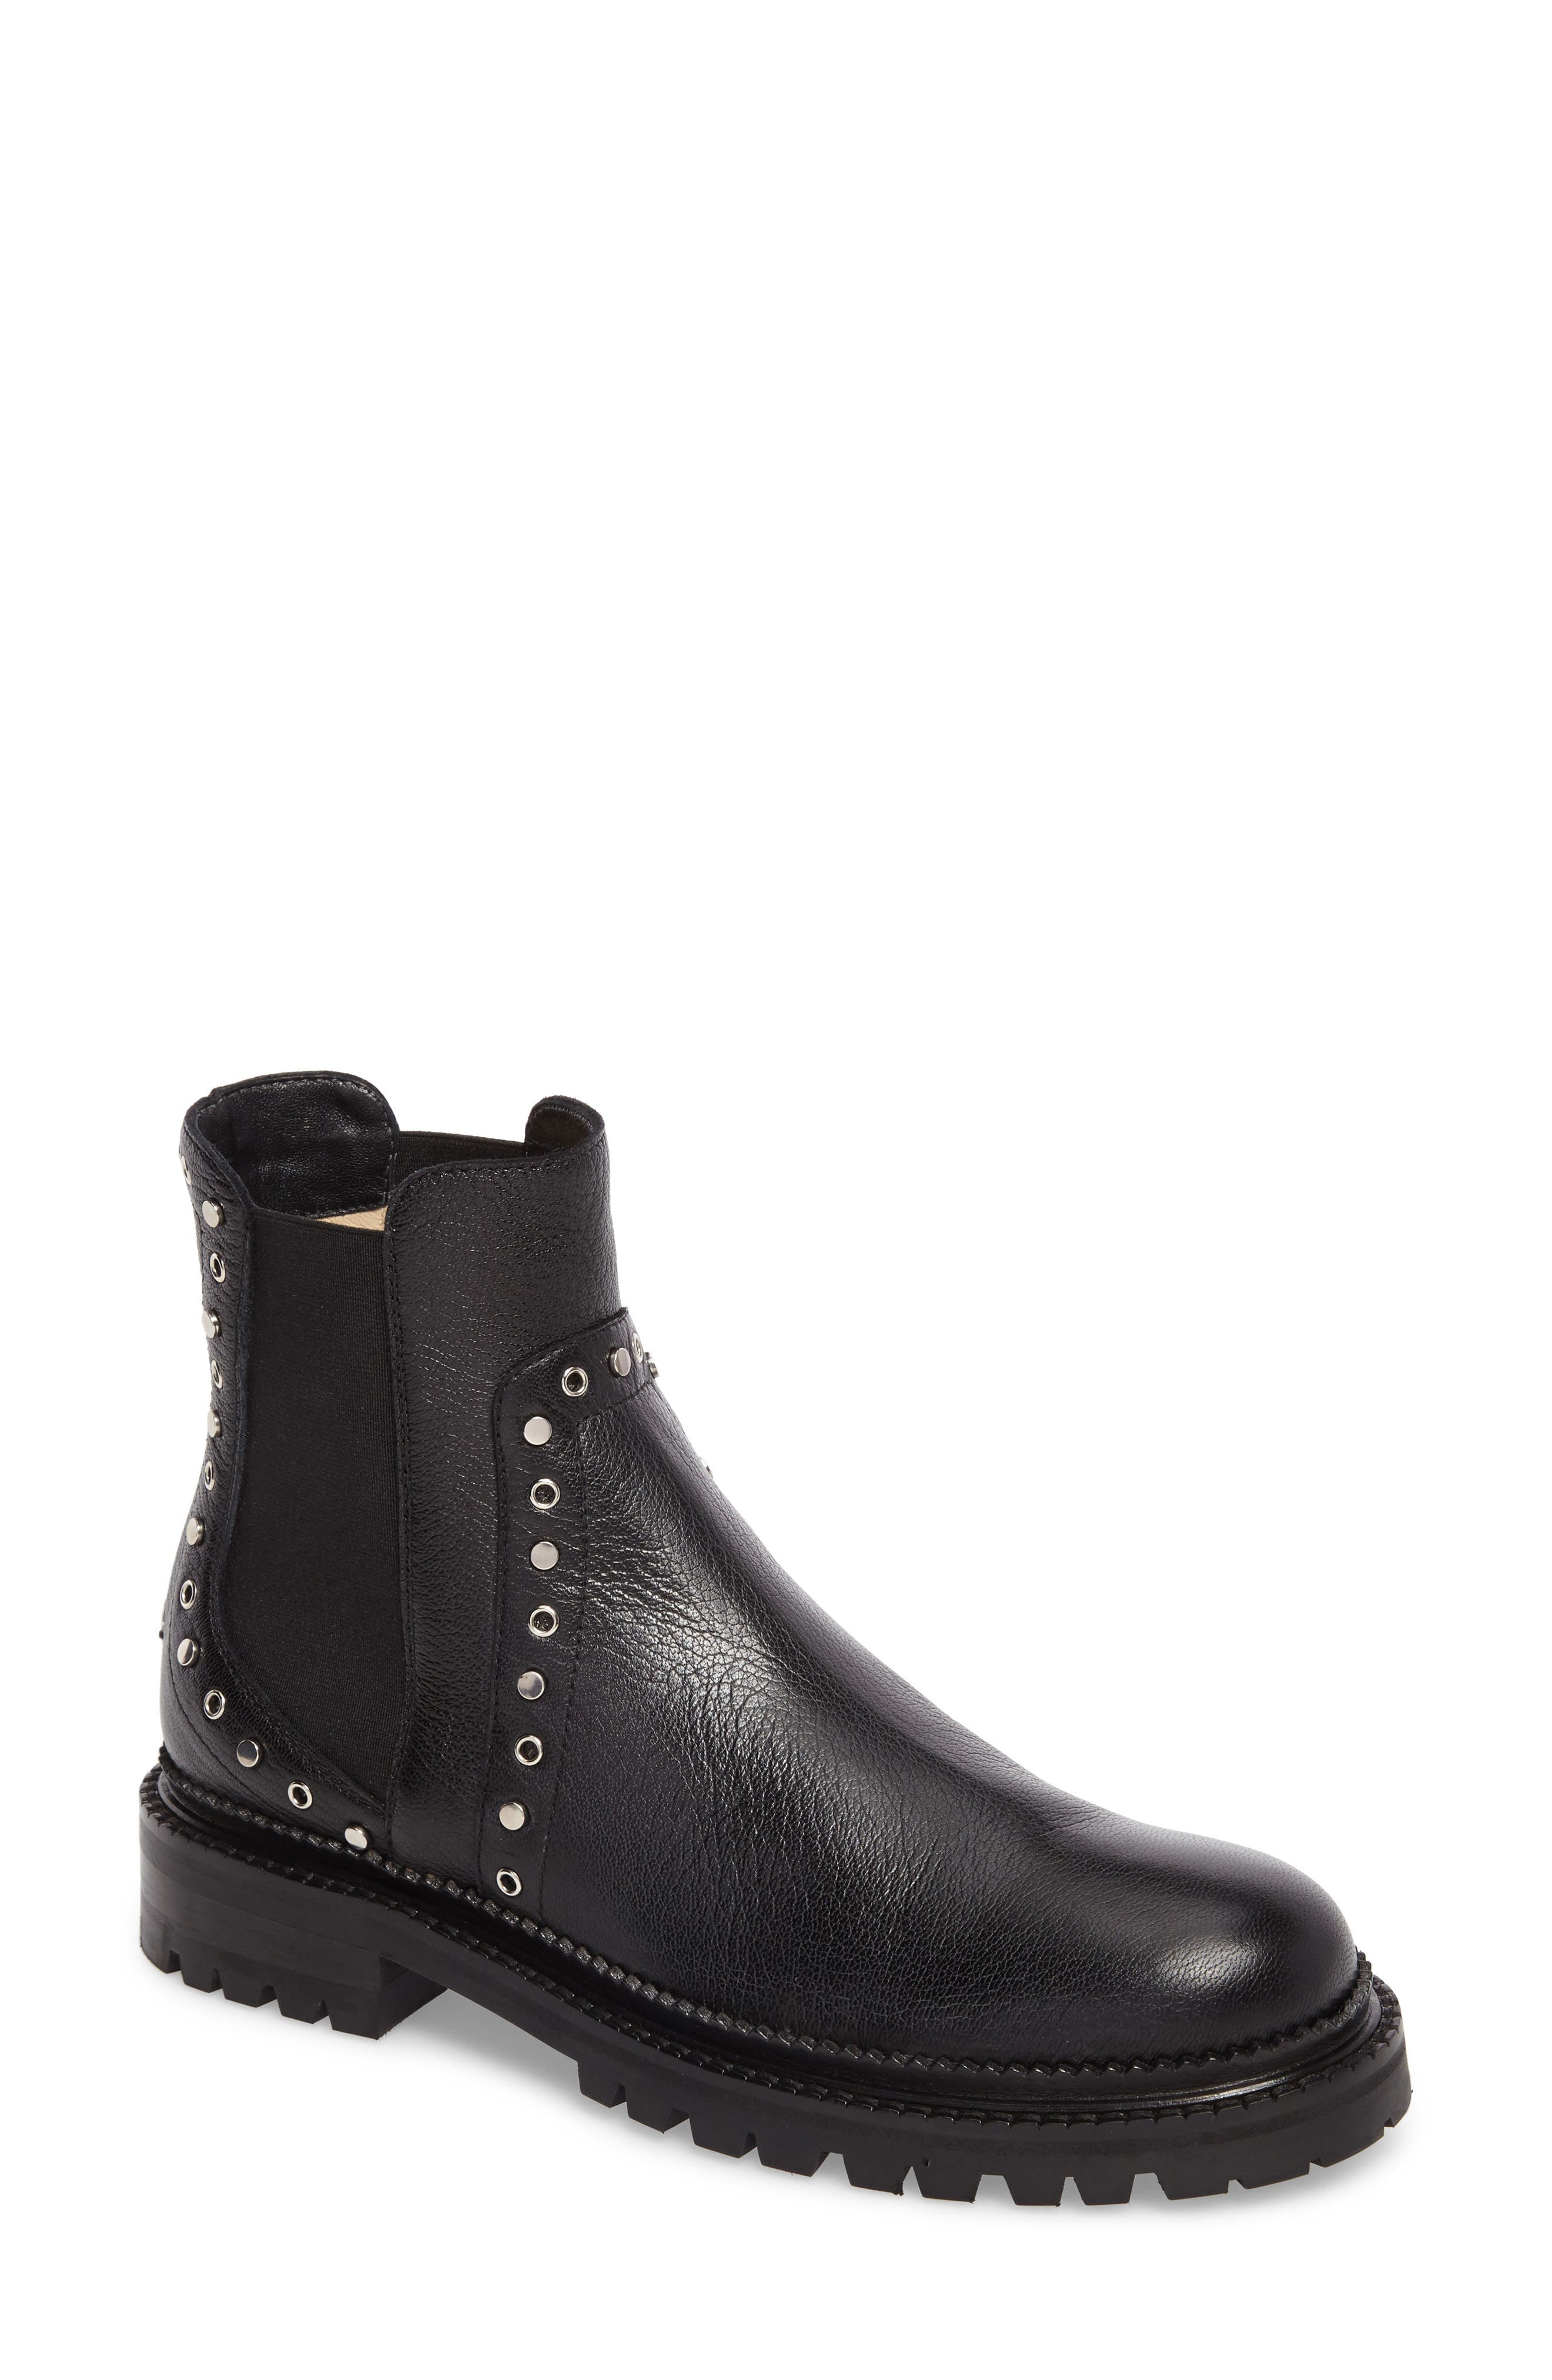 Alternate Image 1 Selected - Jimmy Choo Burrow Chelsea Boot (Women)